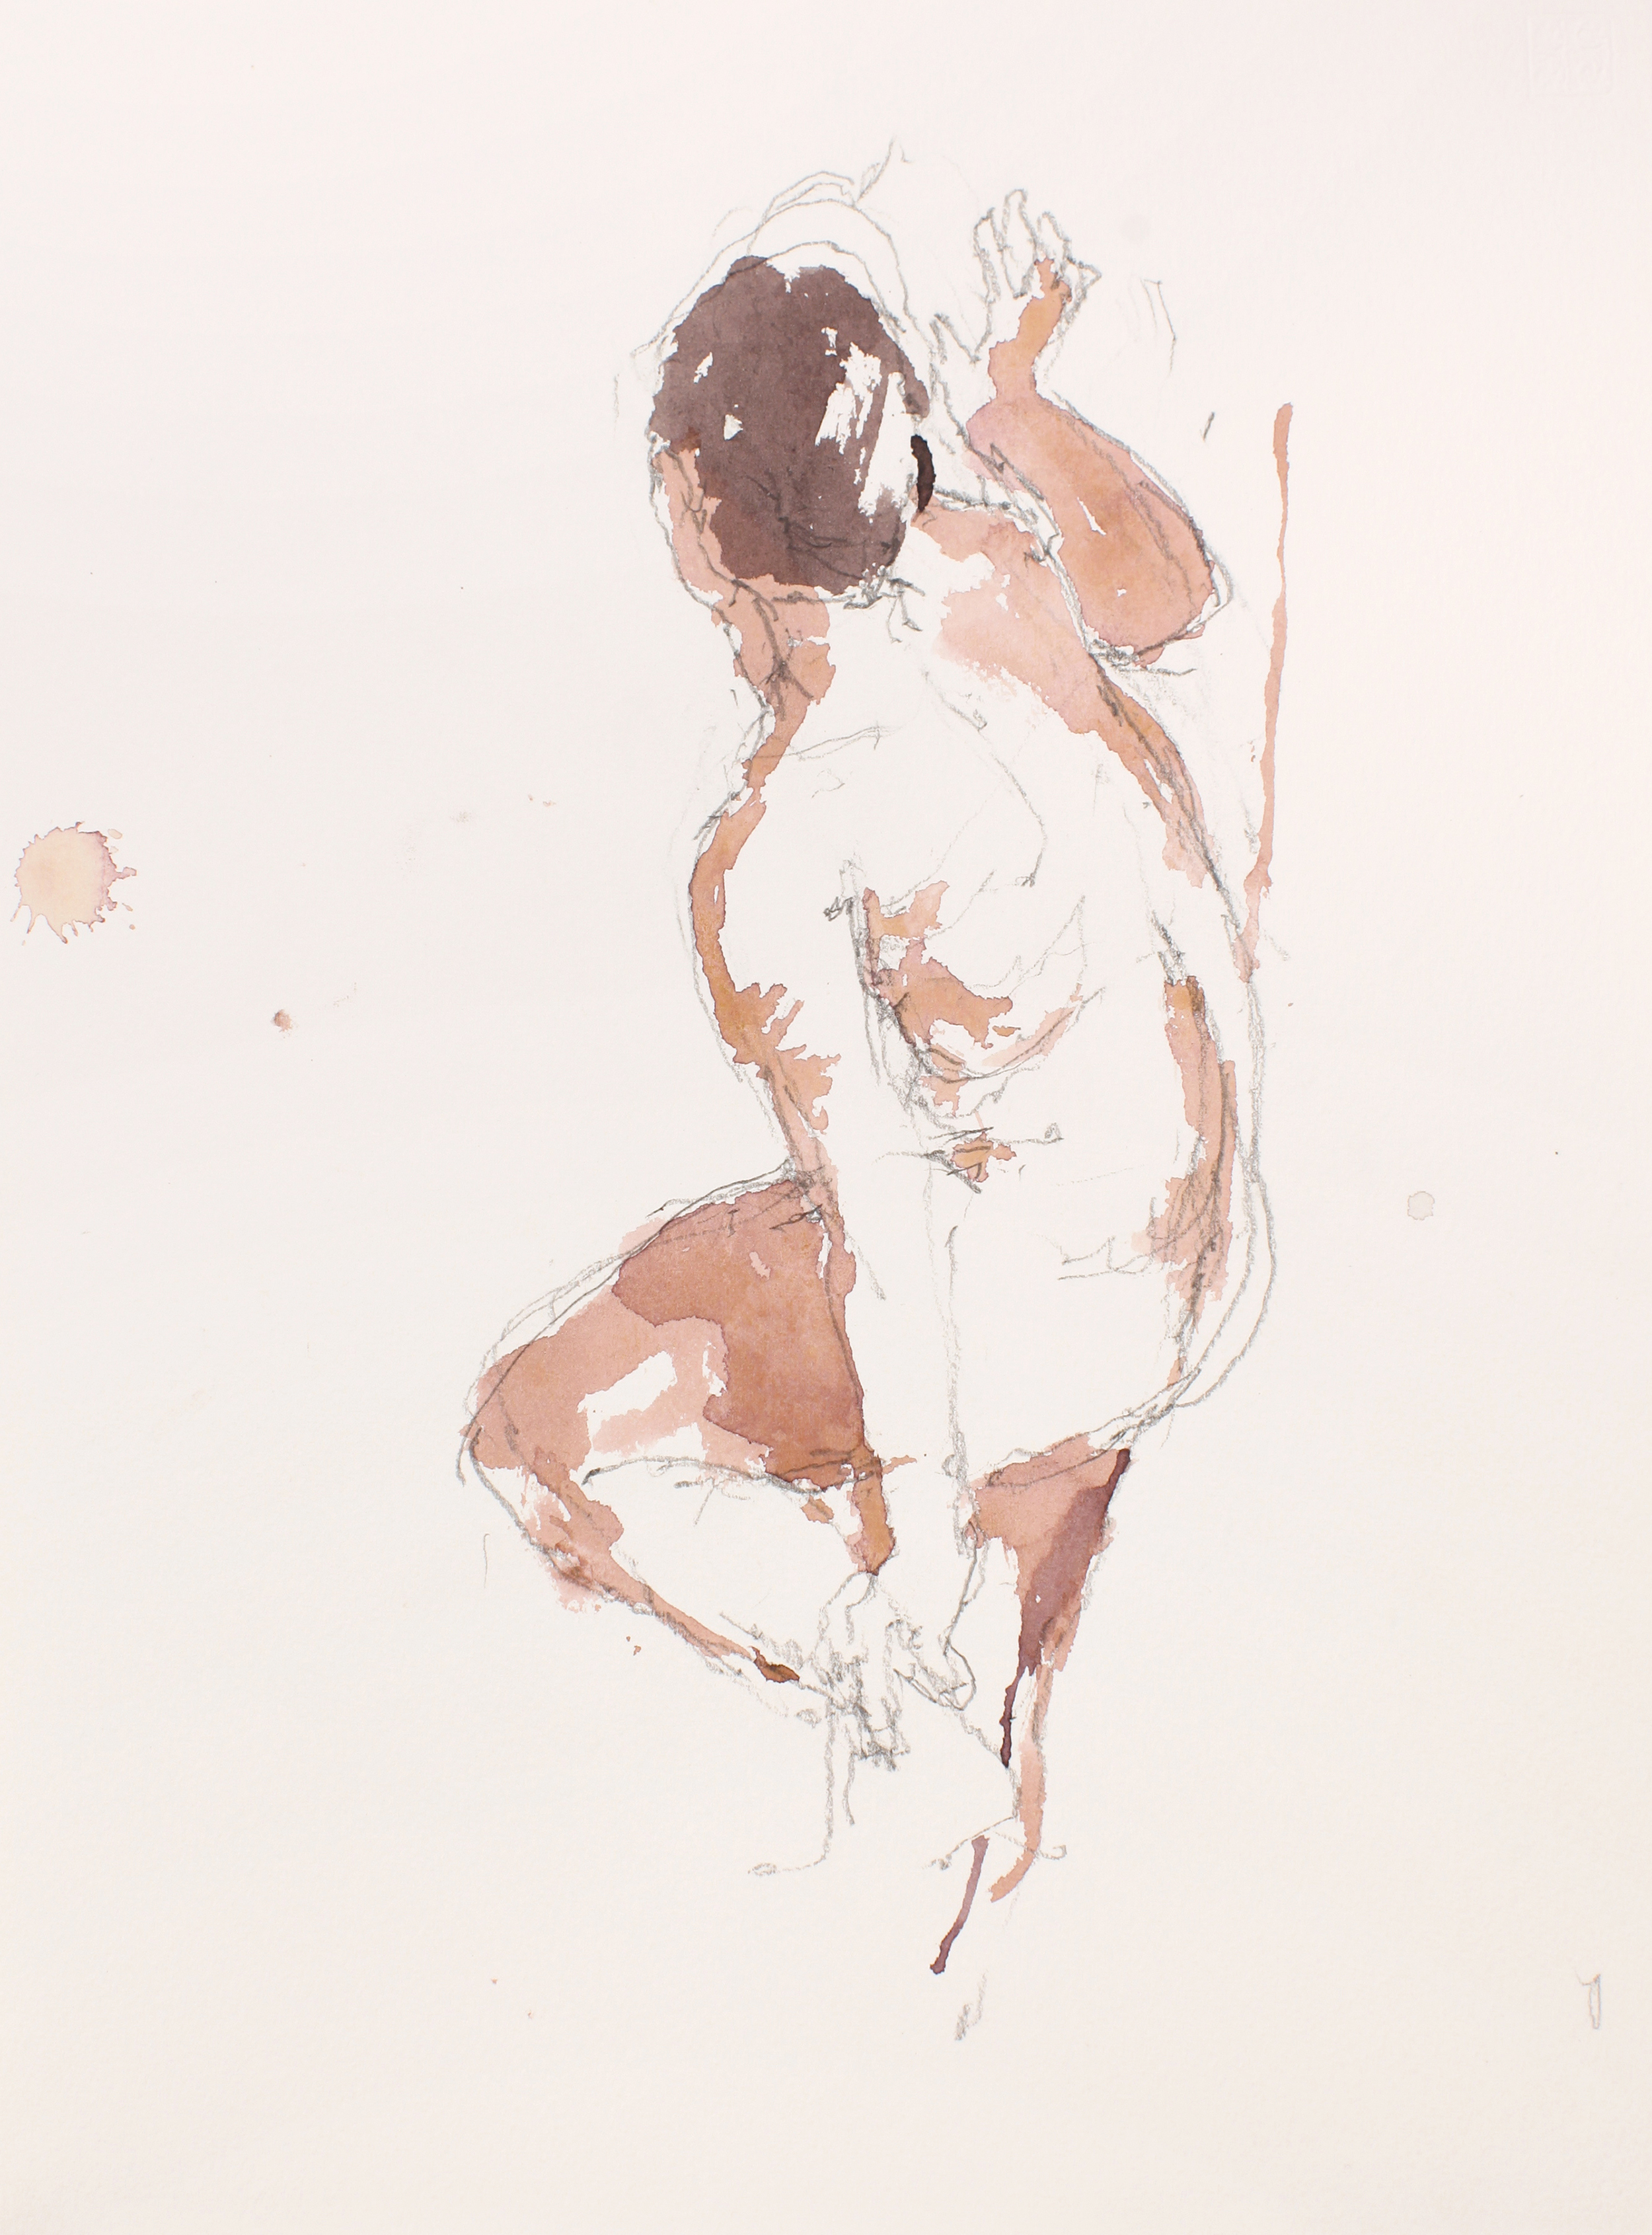 2007_Stading_Nude_Holding_Left_Leg_Ankle_watercolour_and_pencil_on_paper_15x11in_WPF515.jpg